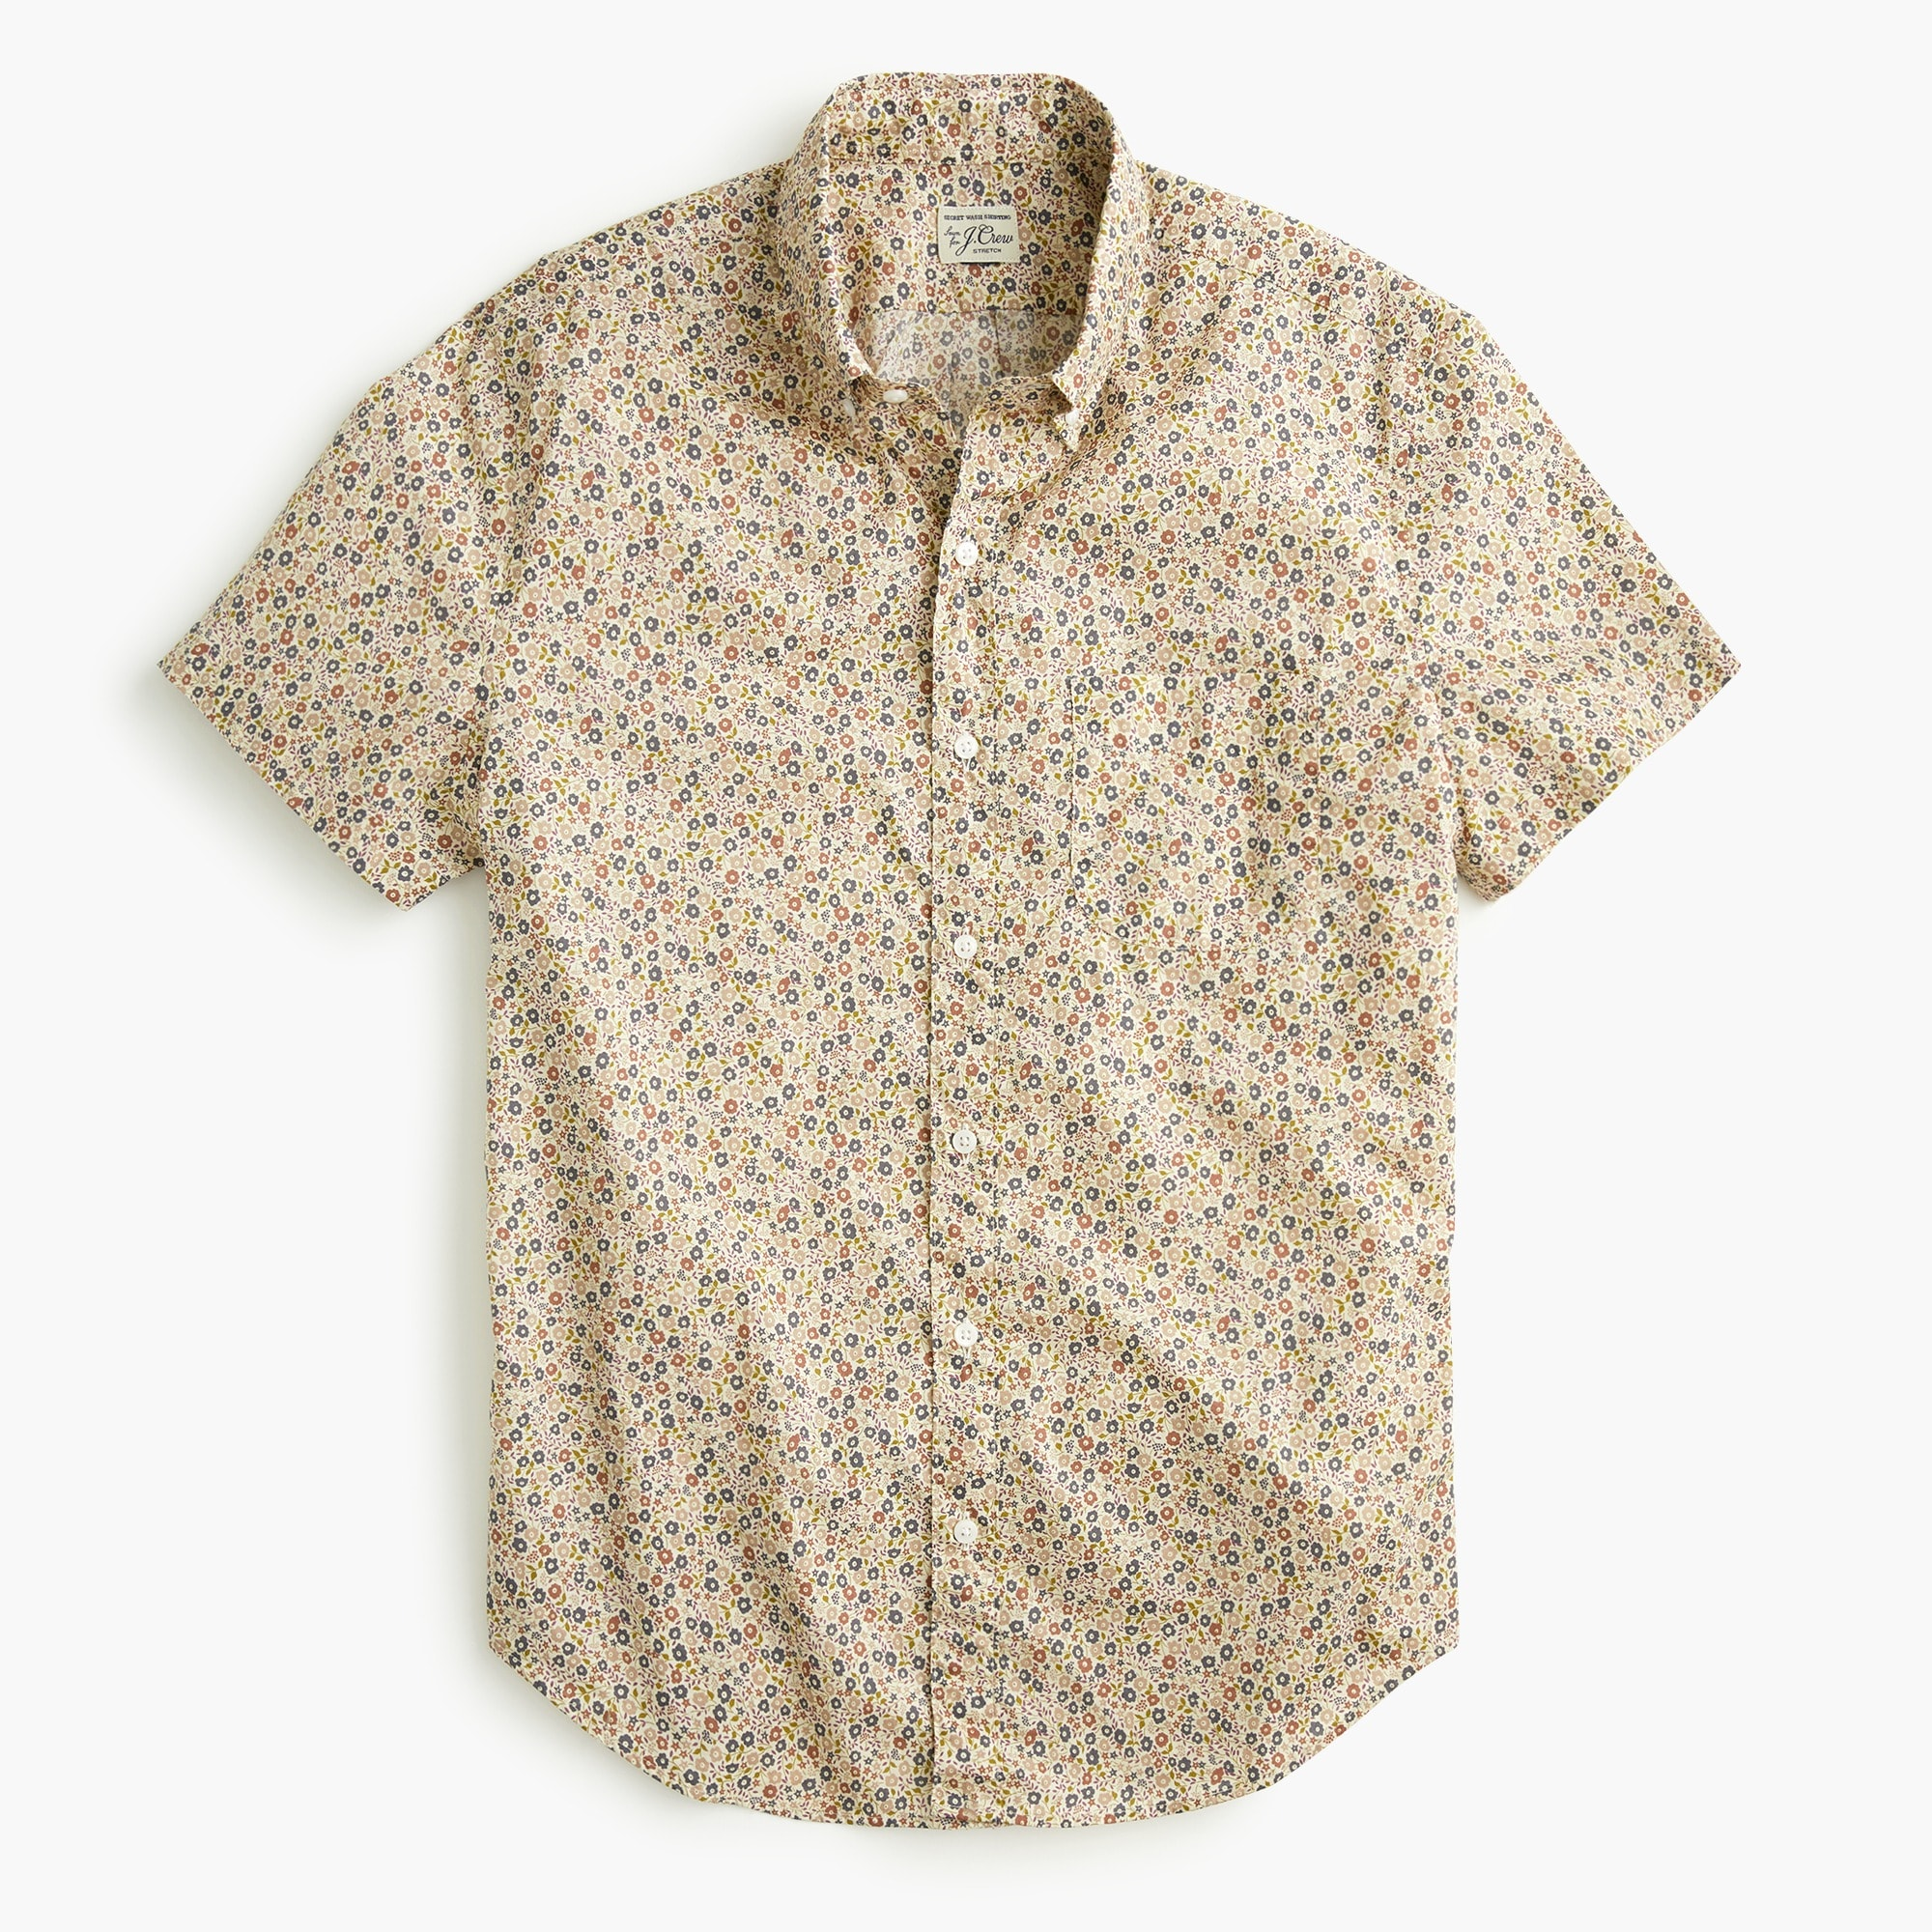 mens Short-sleeve shirt in Liberty® daisy garden print